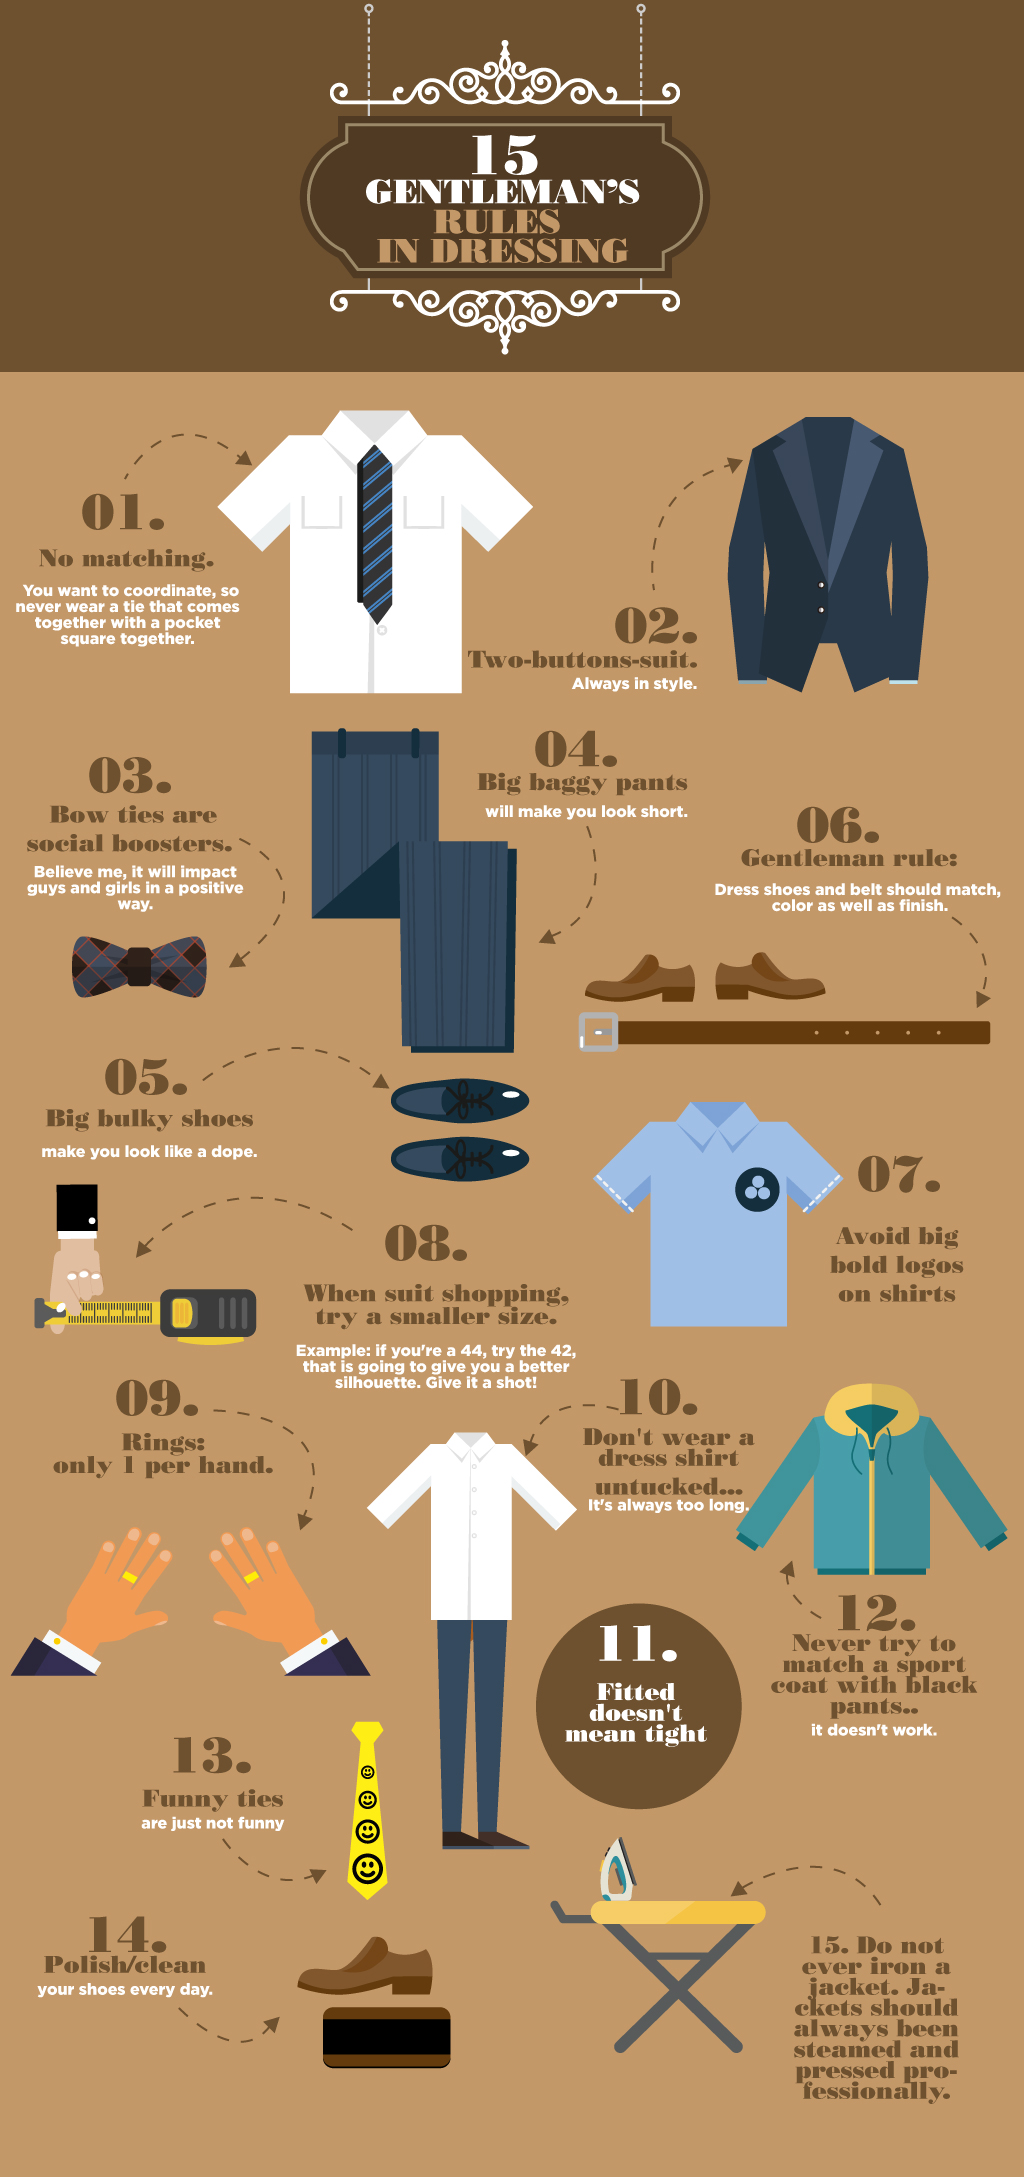 gentleman-rules-infographic1